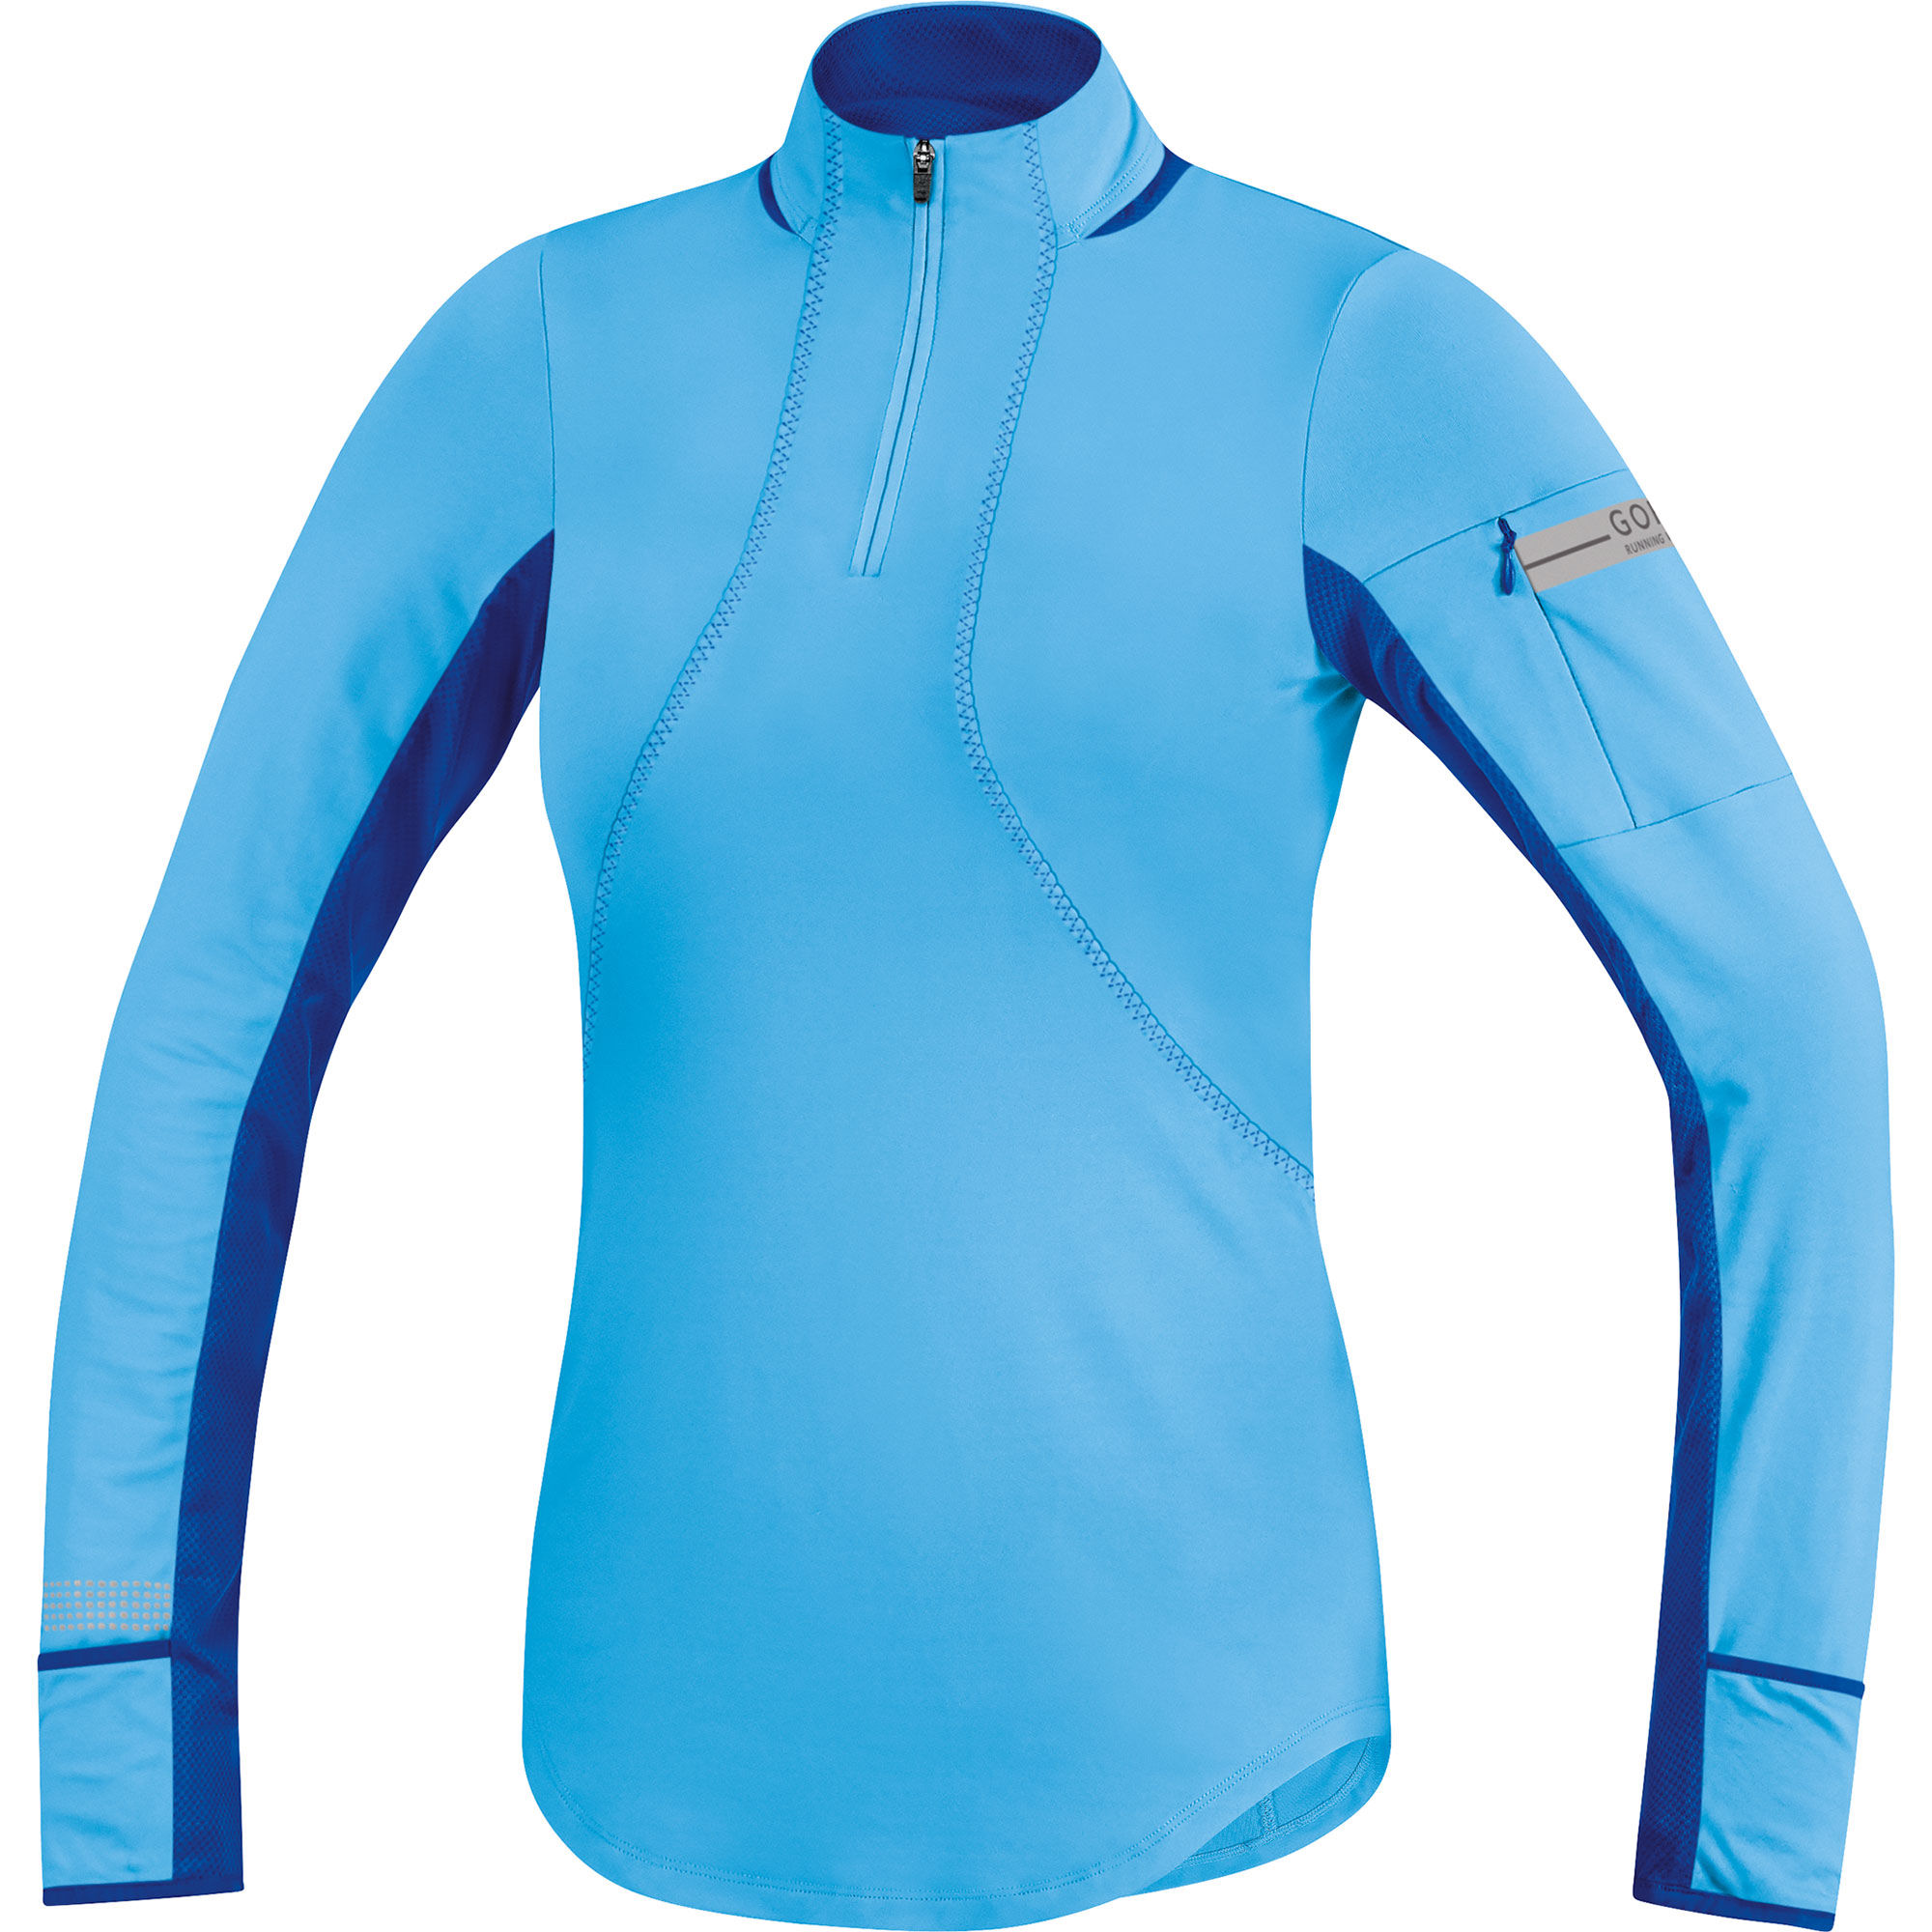 Wiggle gore running wear women 39 s air zip long sleeve for Women s running shirts